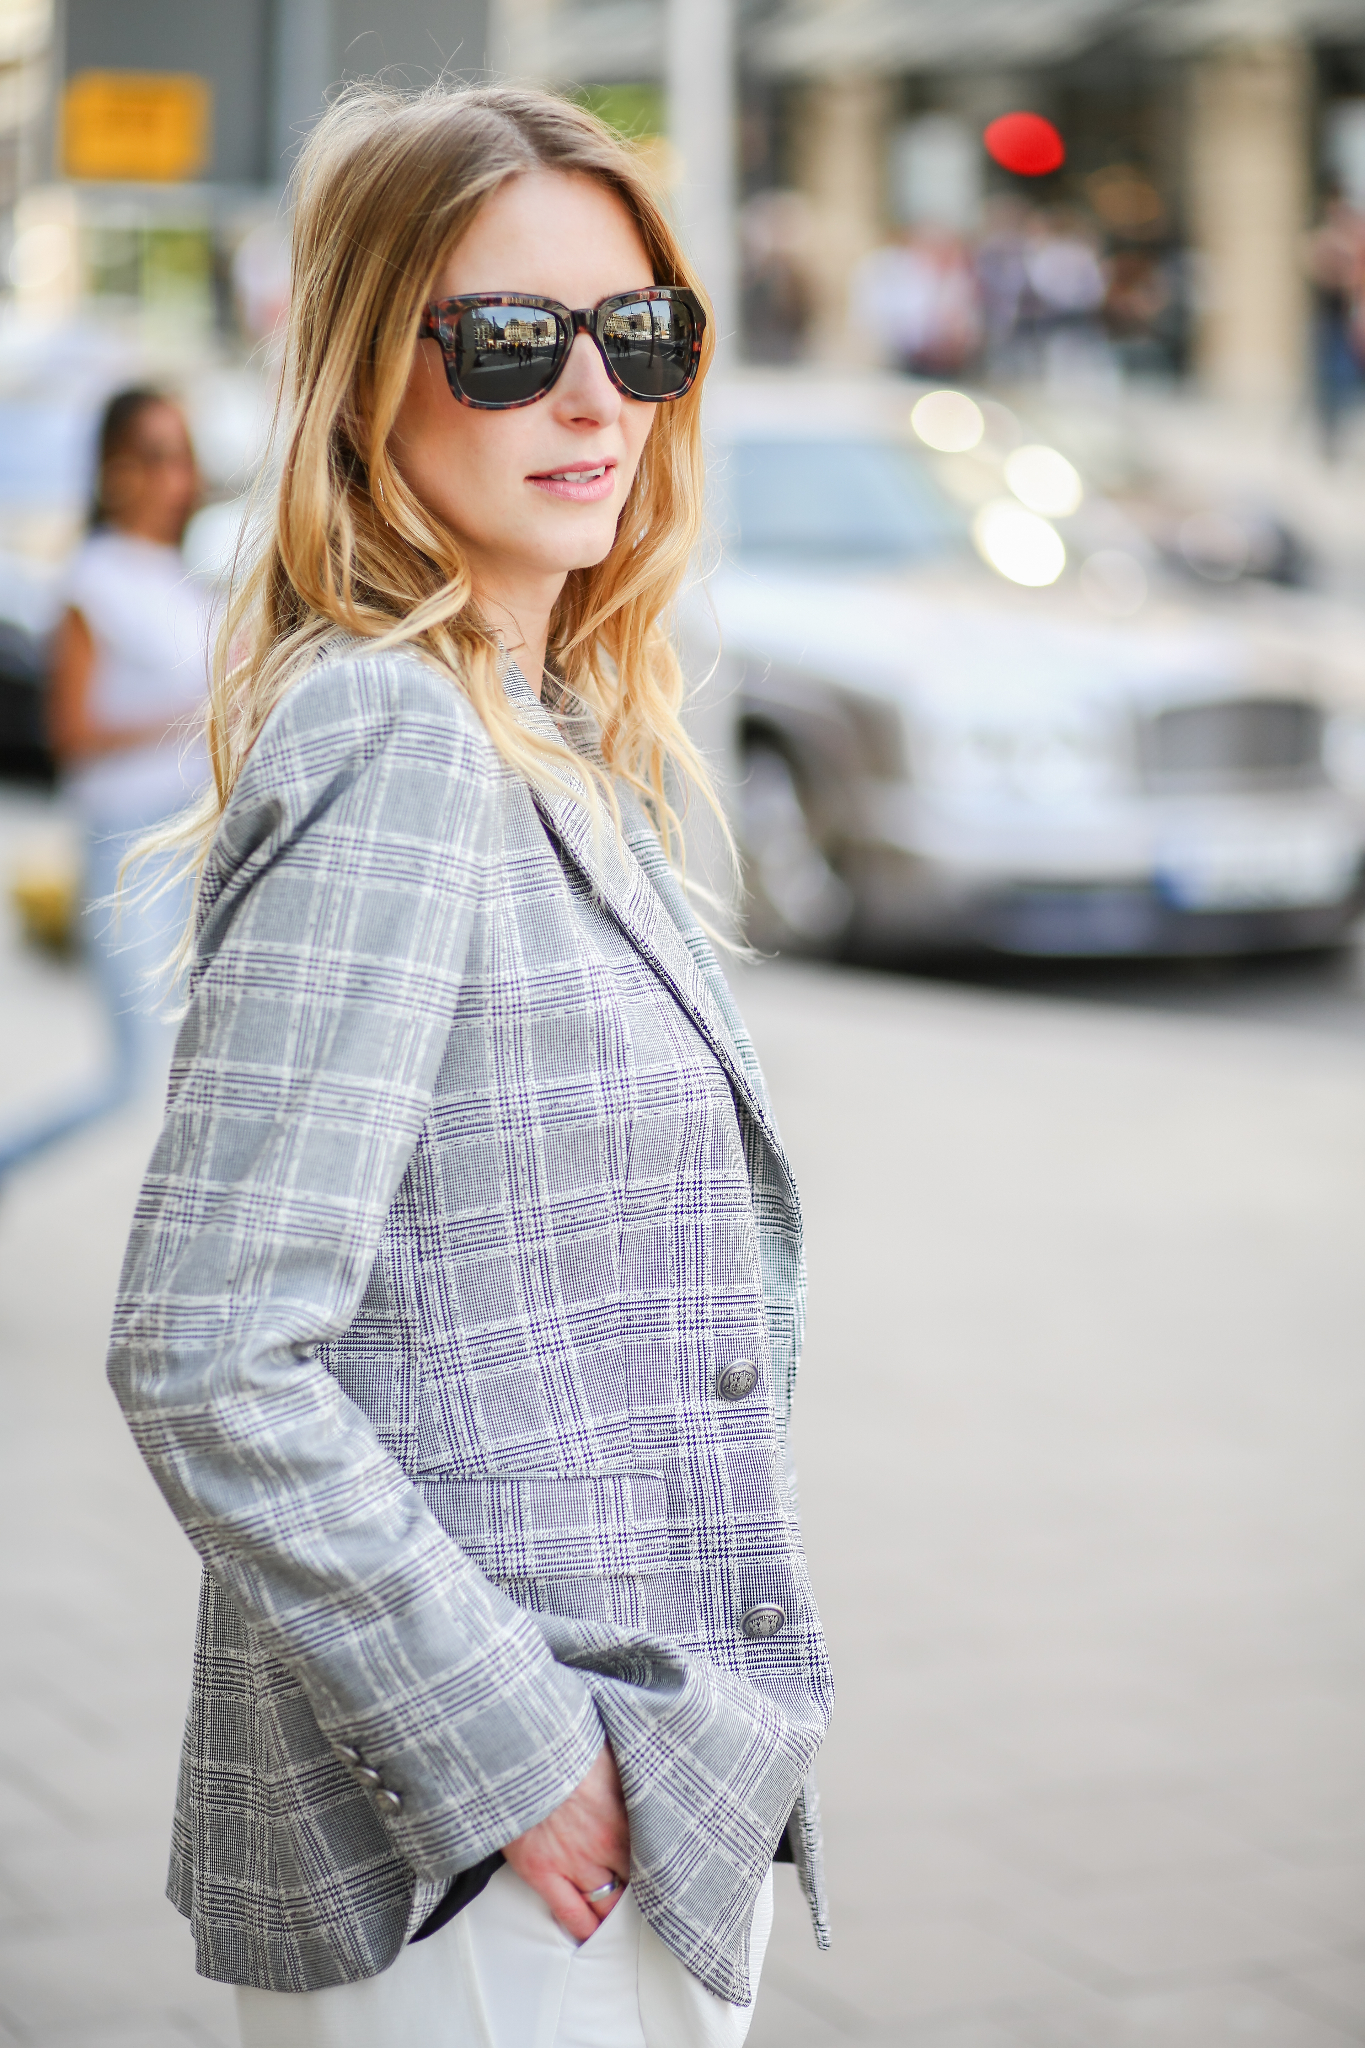 MOD-by-Monique-Fashion-Looks-White-and-checked-13